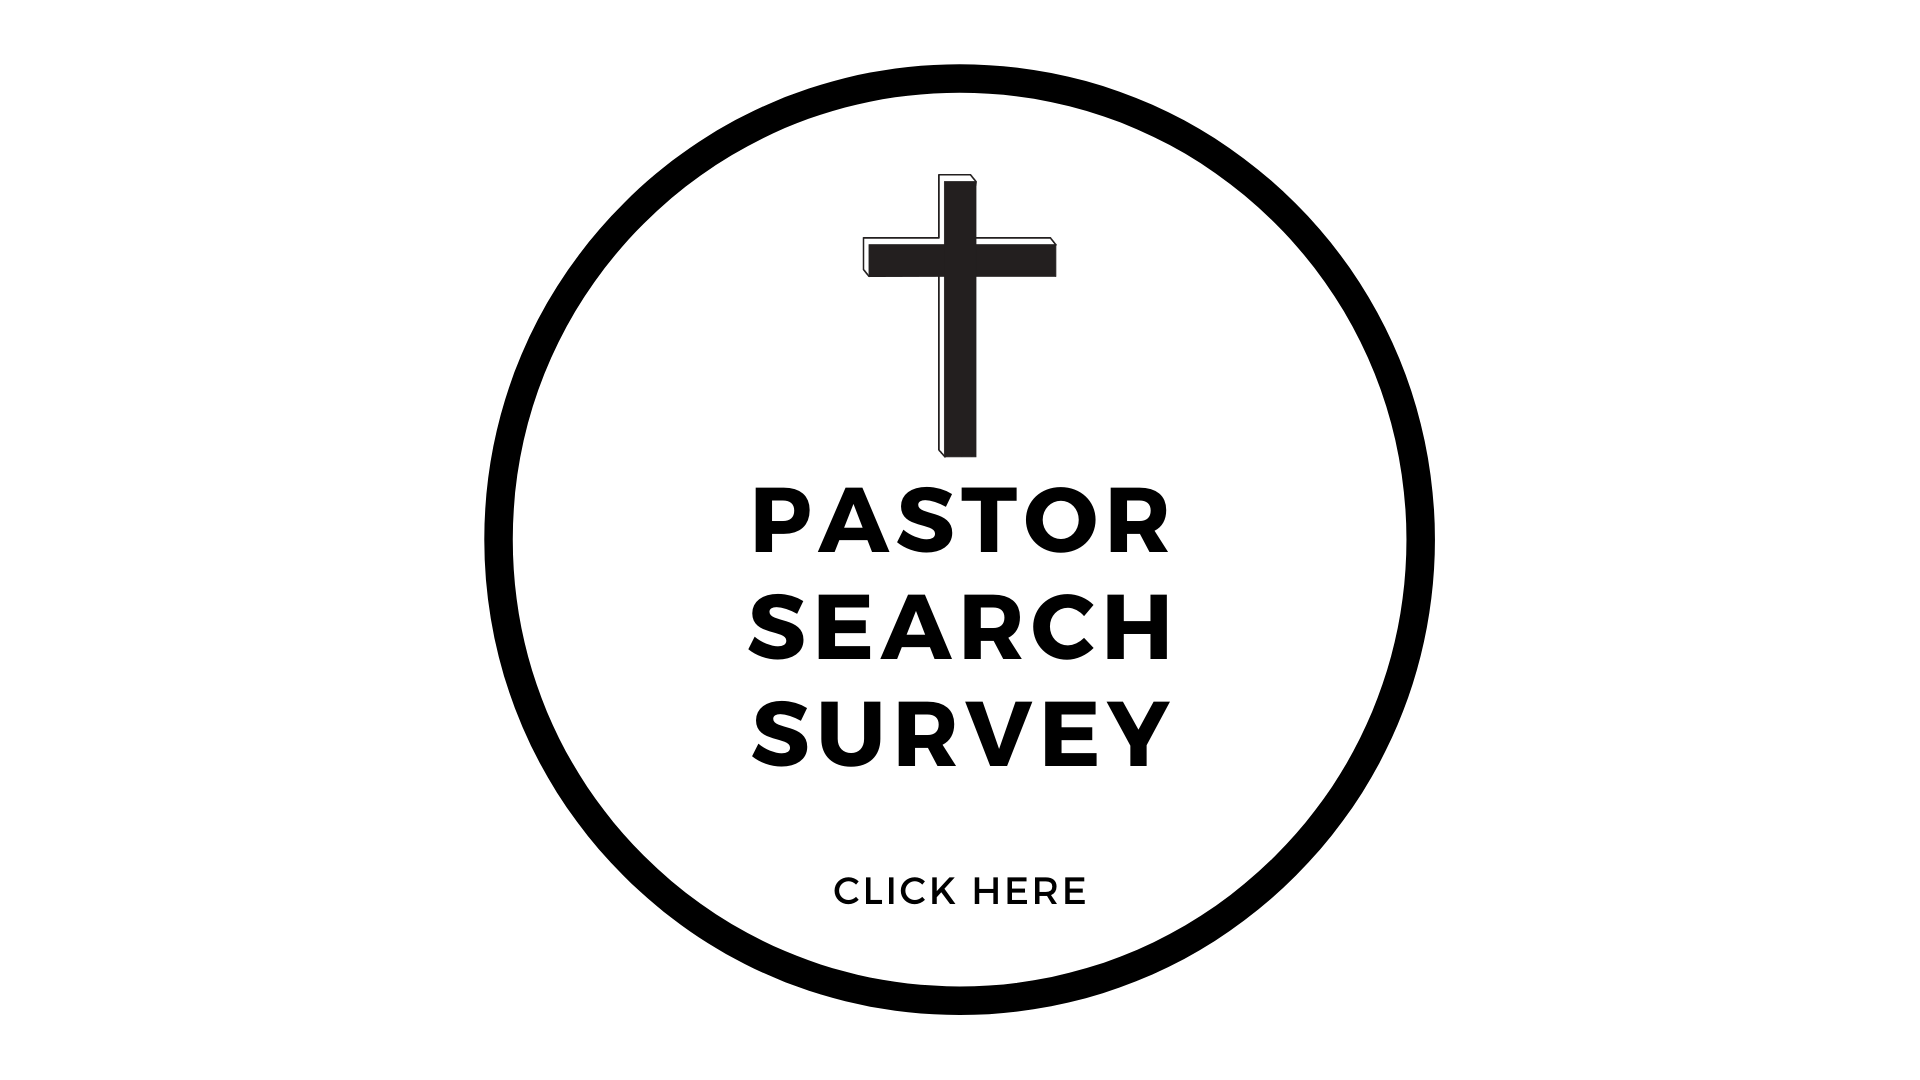 Pastor Search Survey image